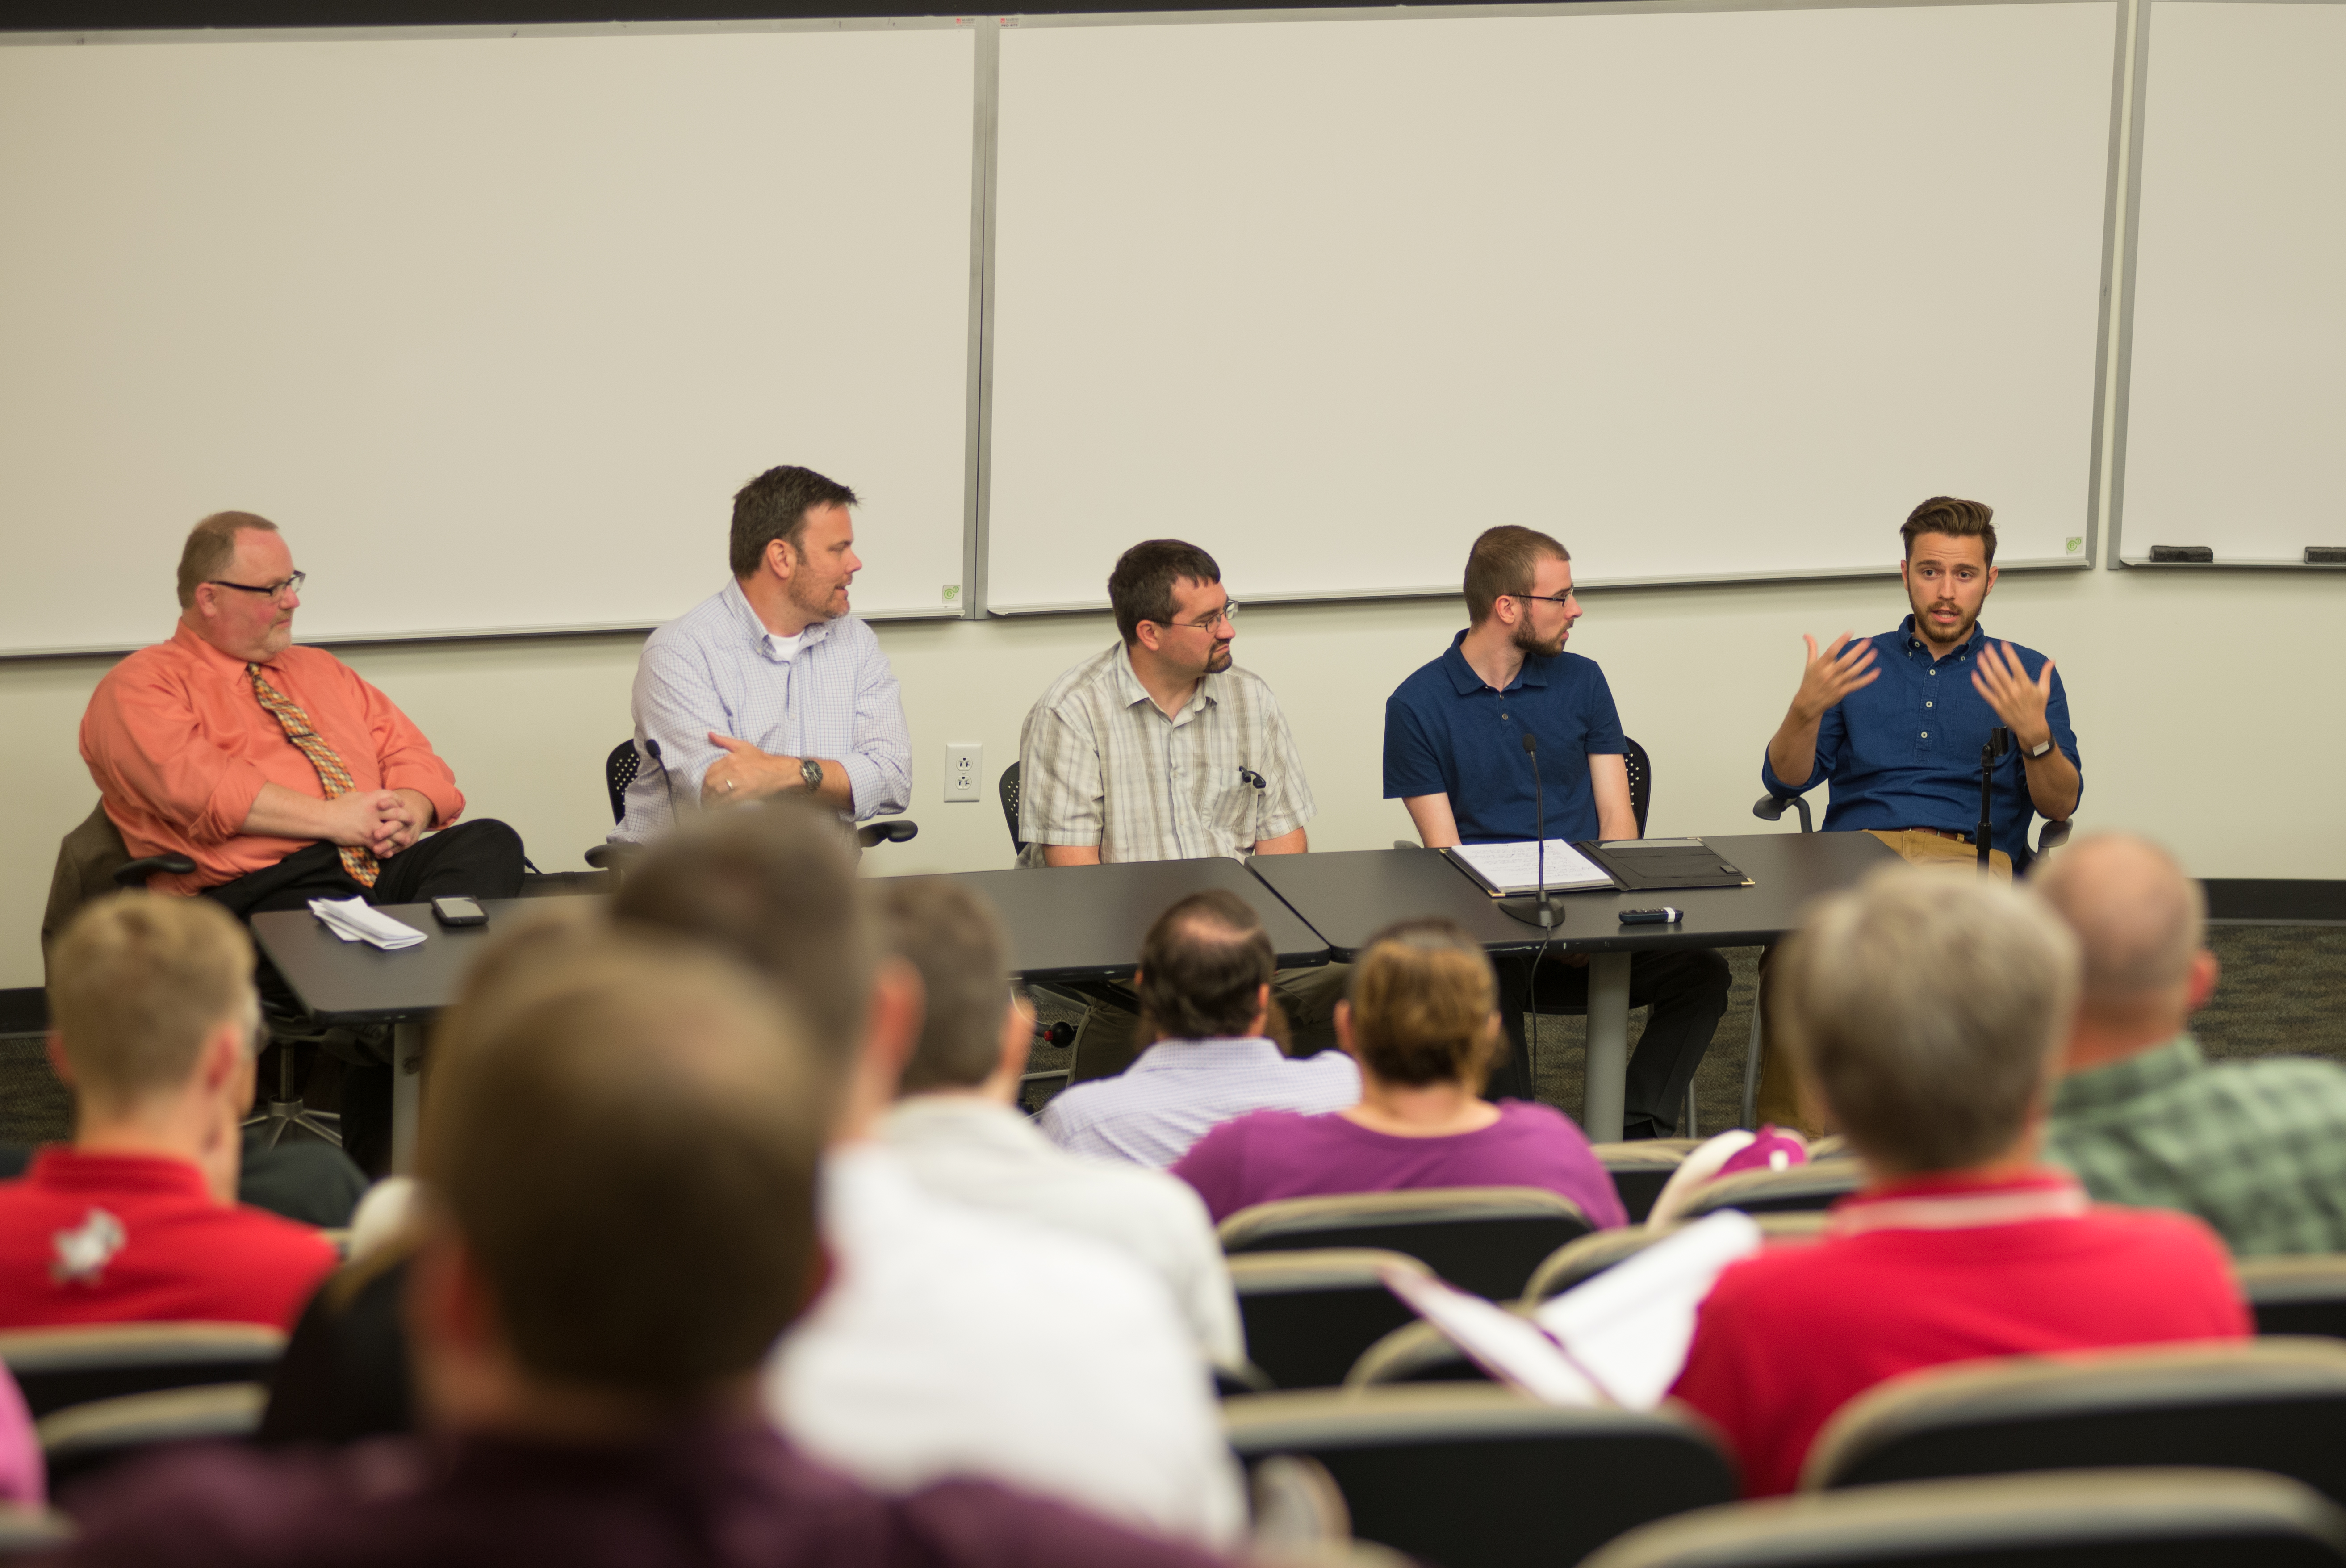 IT security professionals discuss cybersecurity.